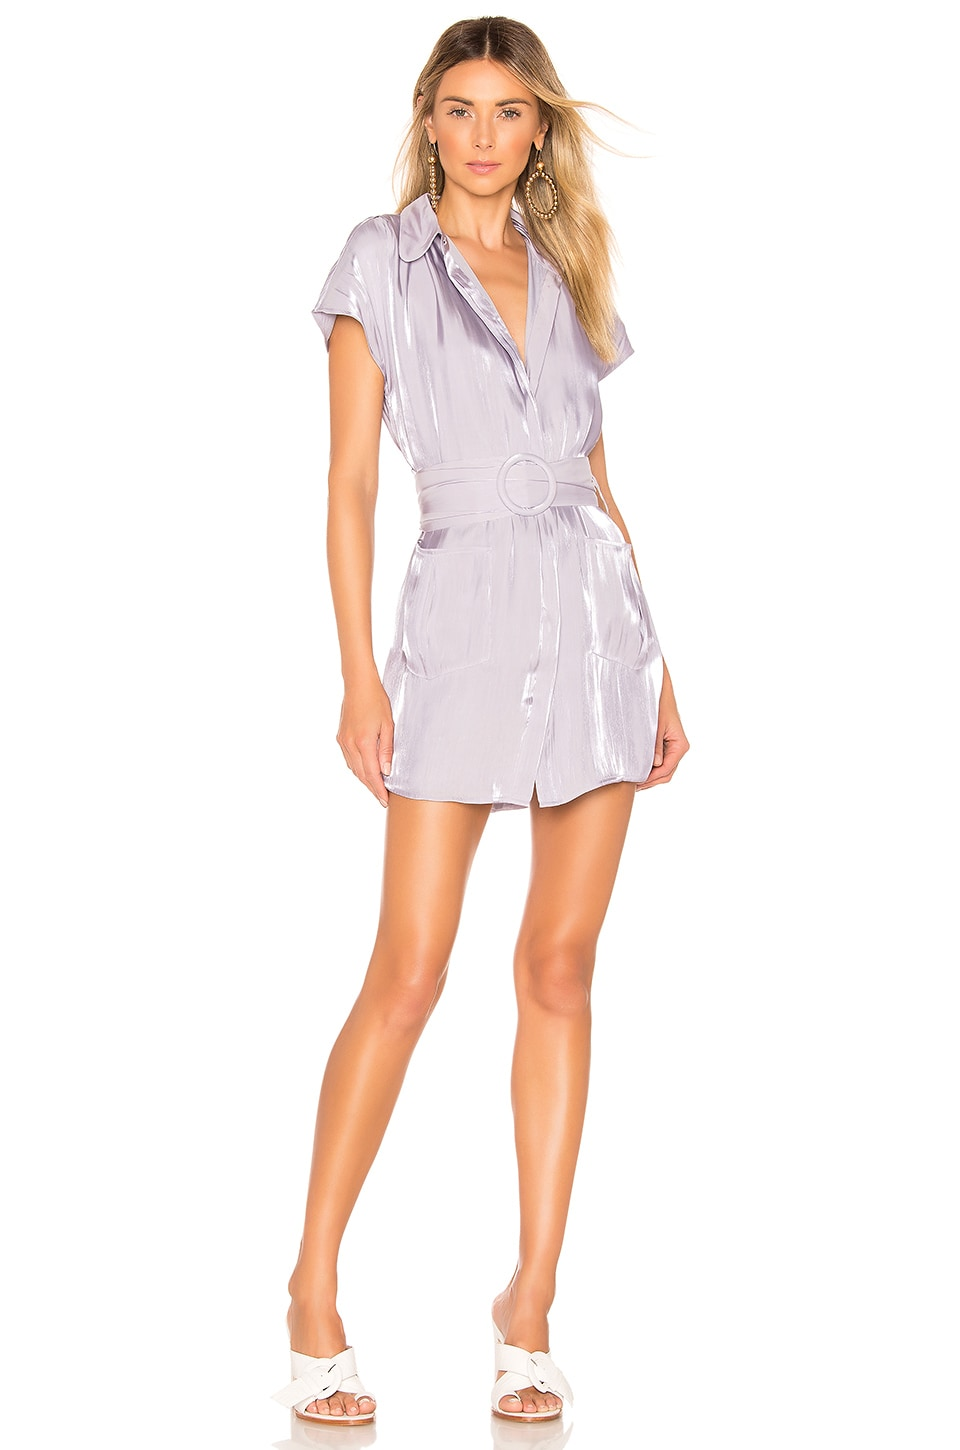 House of Harlow 1960 x REVOLVE Noreen Dress in Lilac